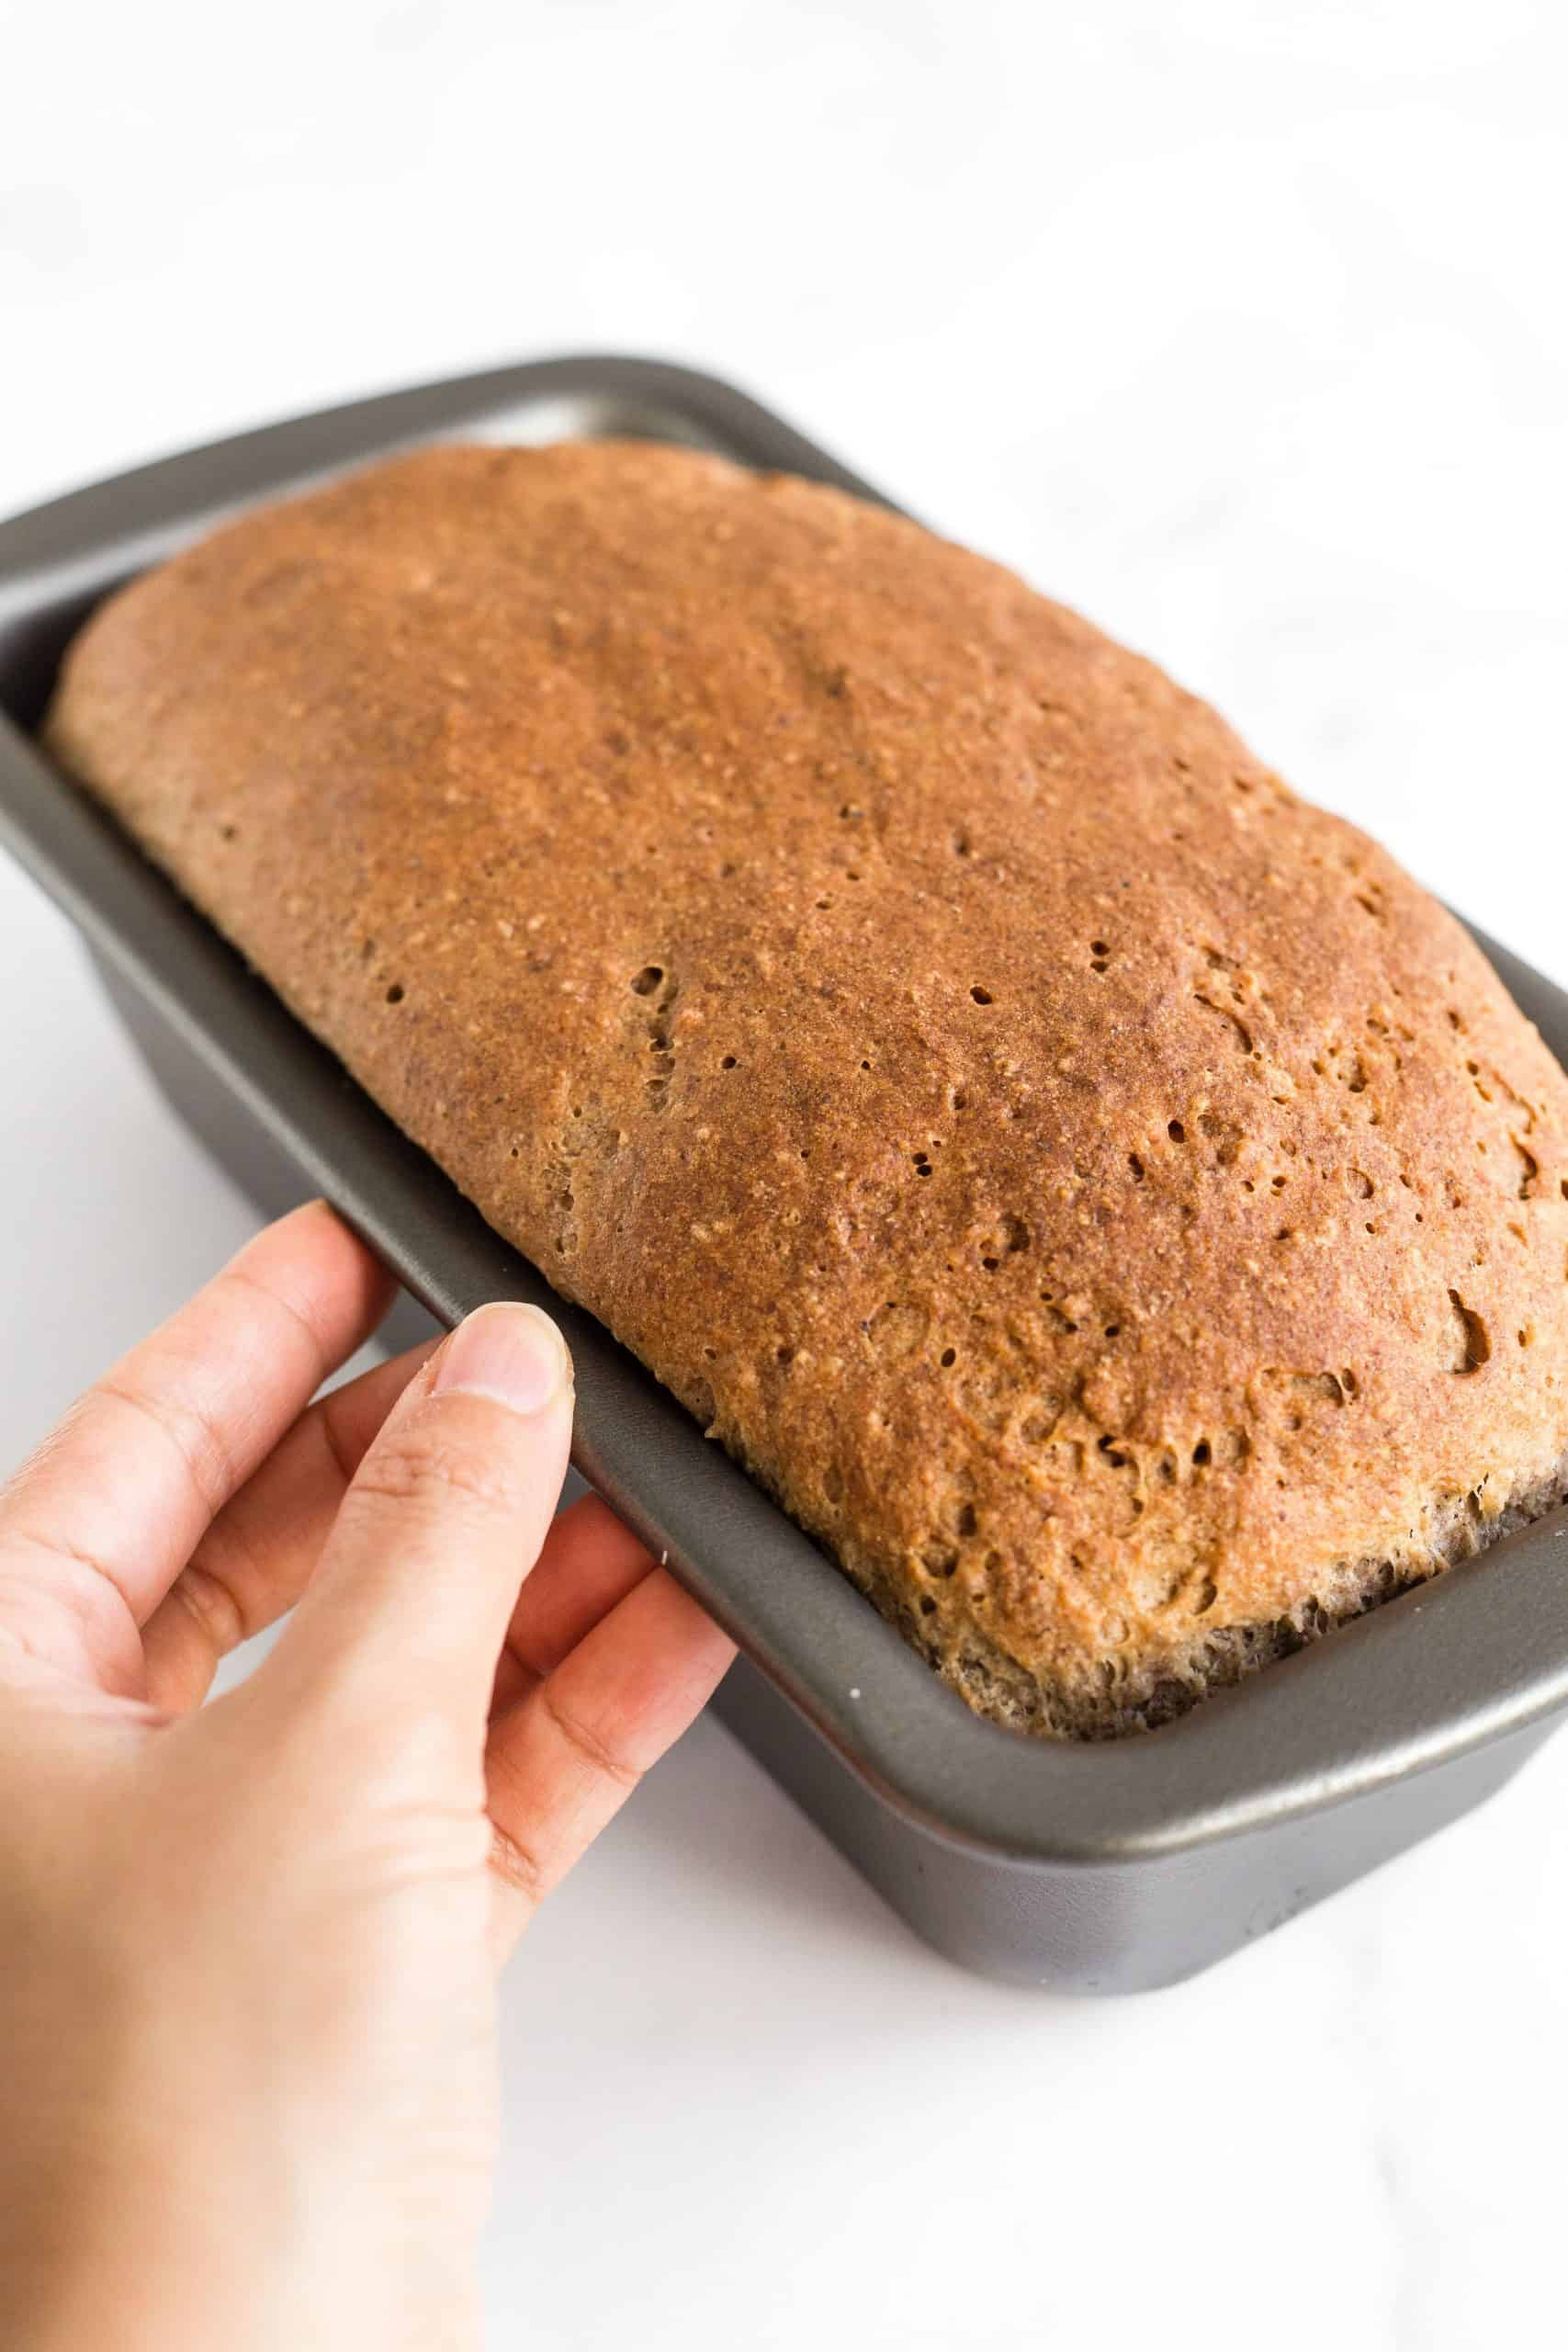 Holding a pan with a freshly baked loaf of bread.